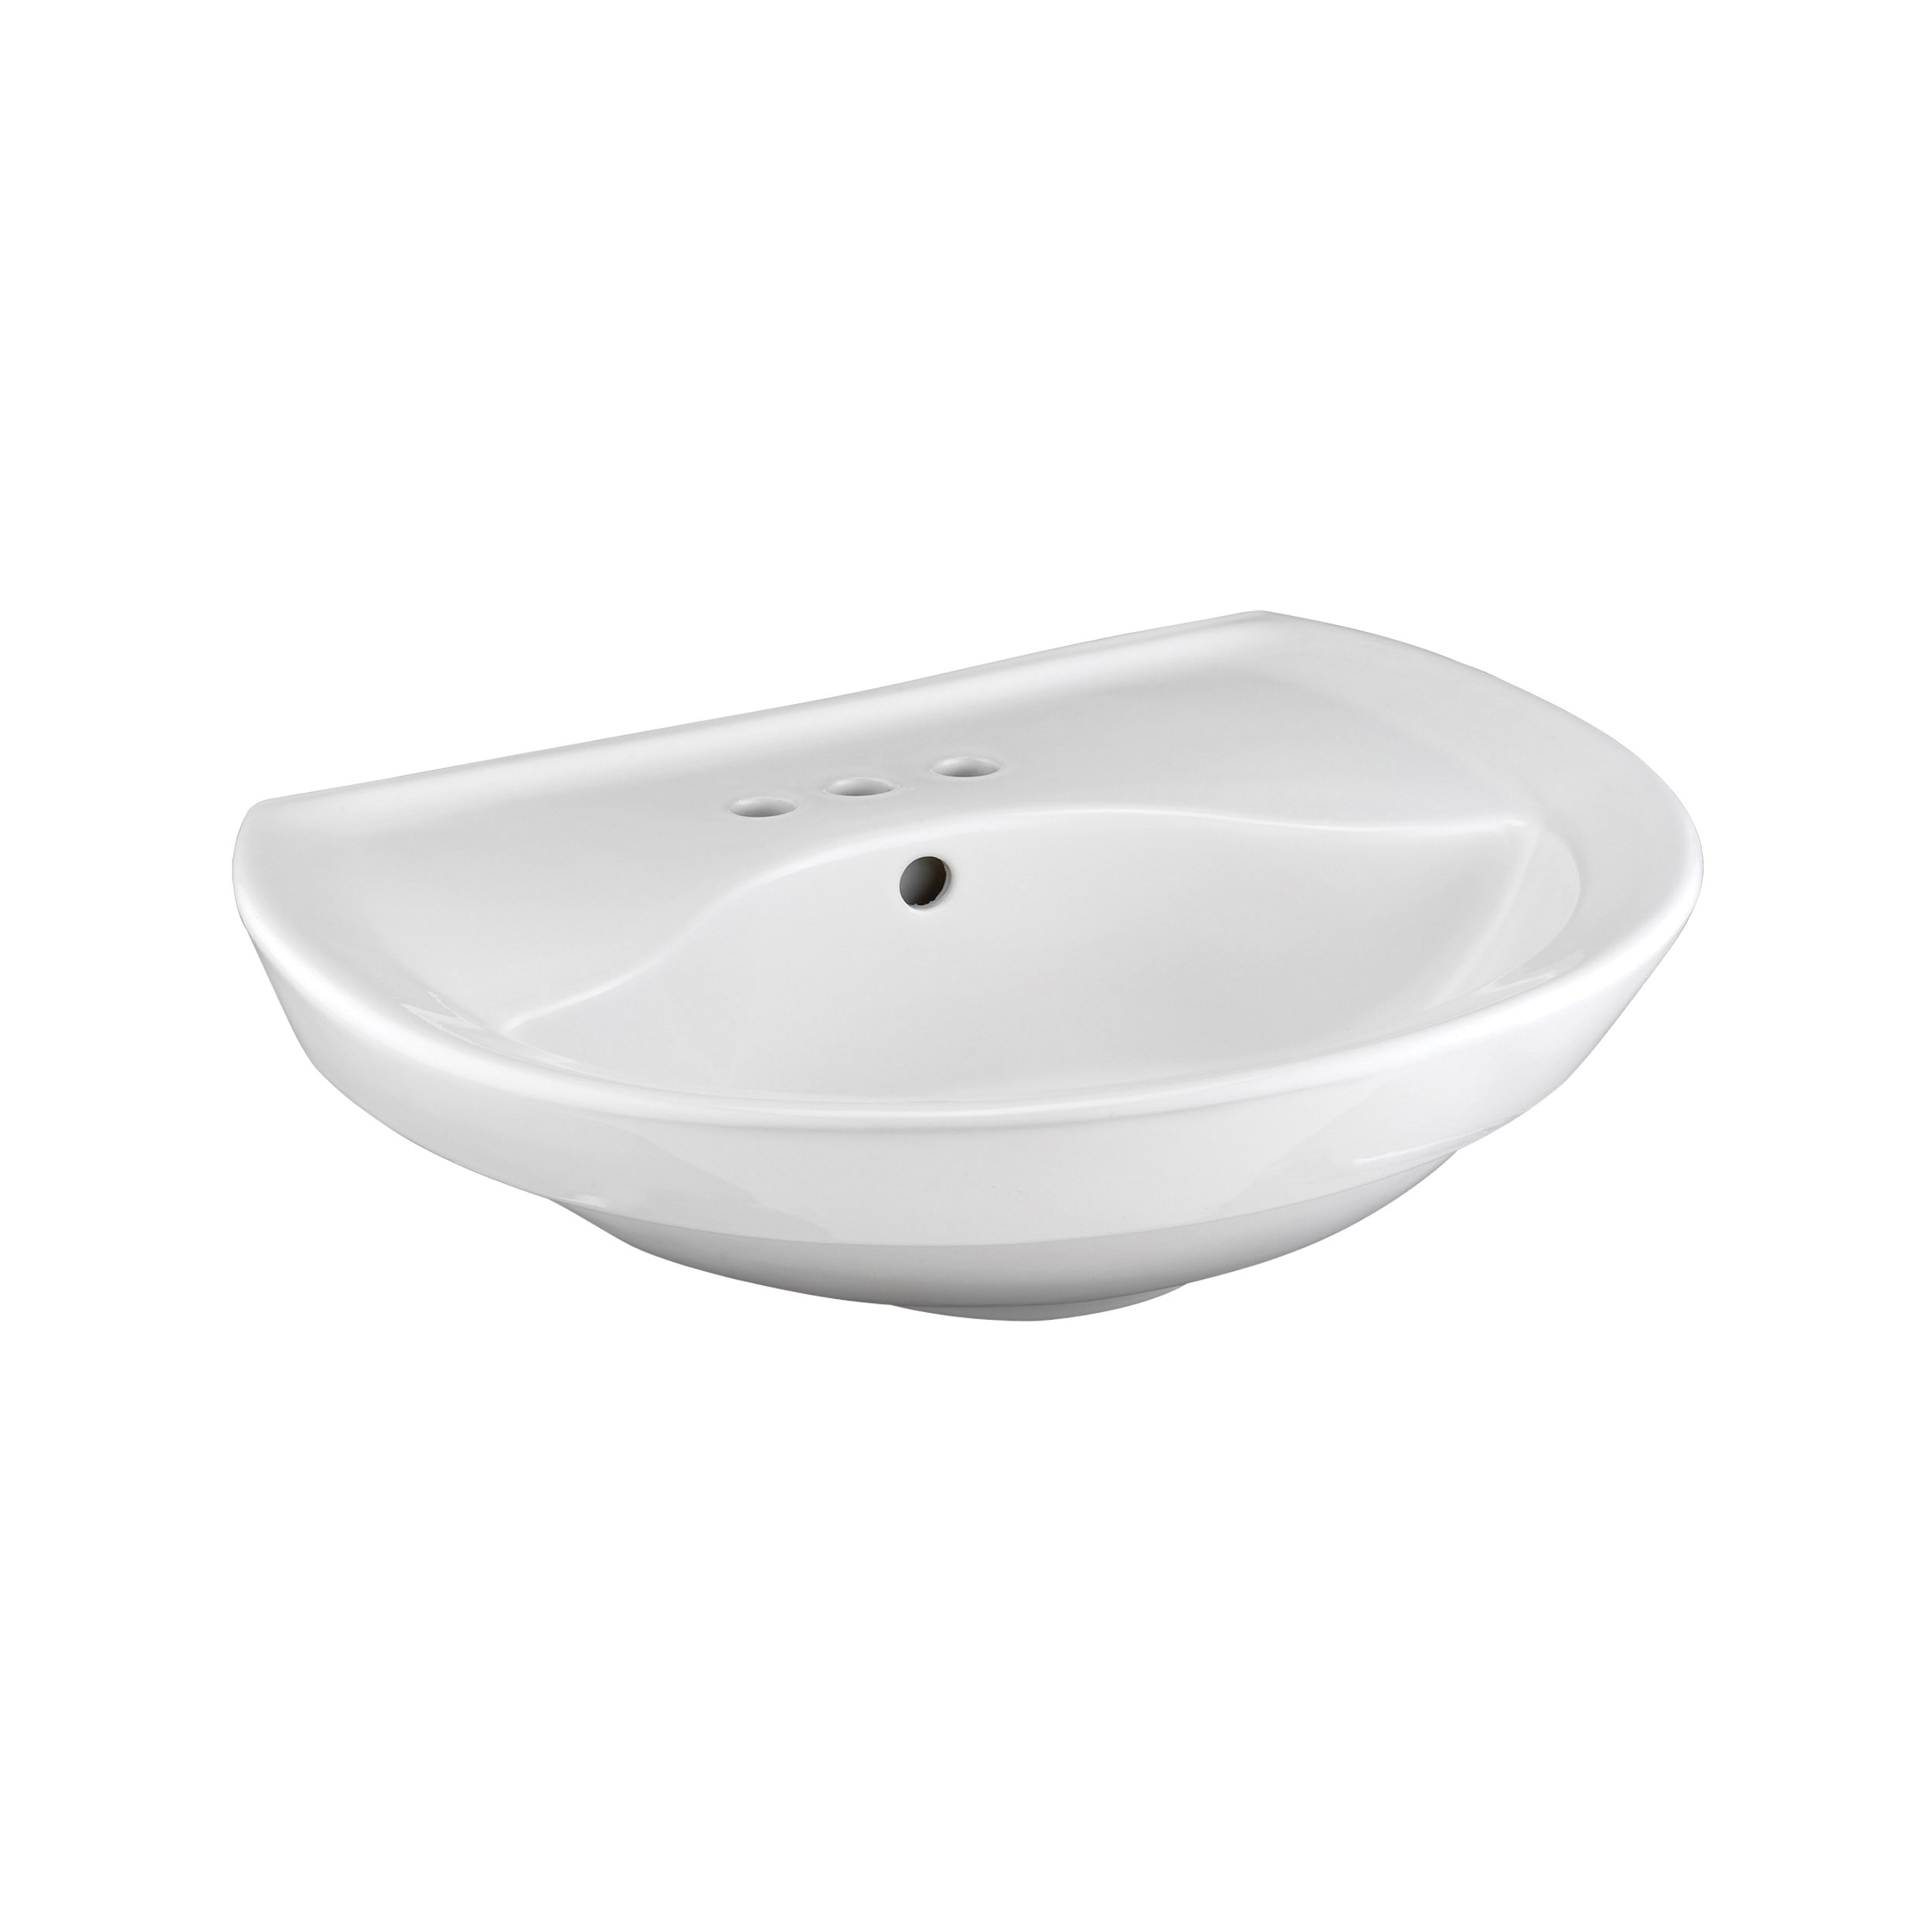 American Standard 0268.004.020 Ravenna™ Pedestal Sink Top, 20 in L x 24-1/4 in W x 8 in H, Round Sink, 4 in Faucet Hole Spacing, Import